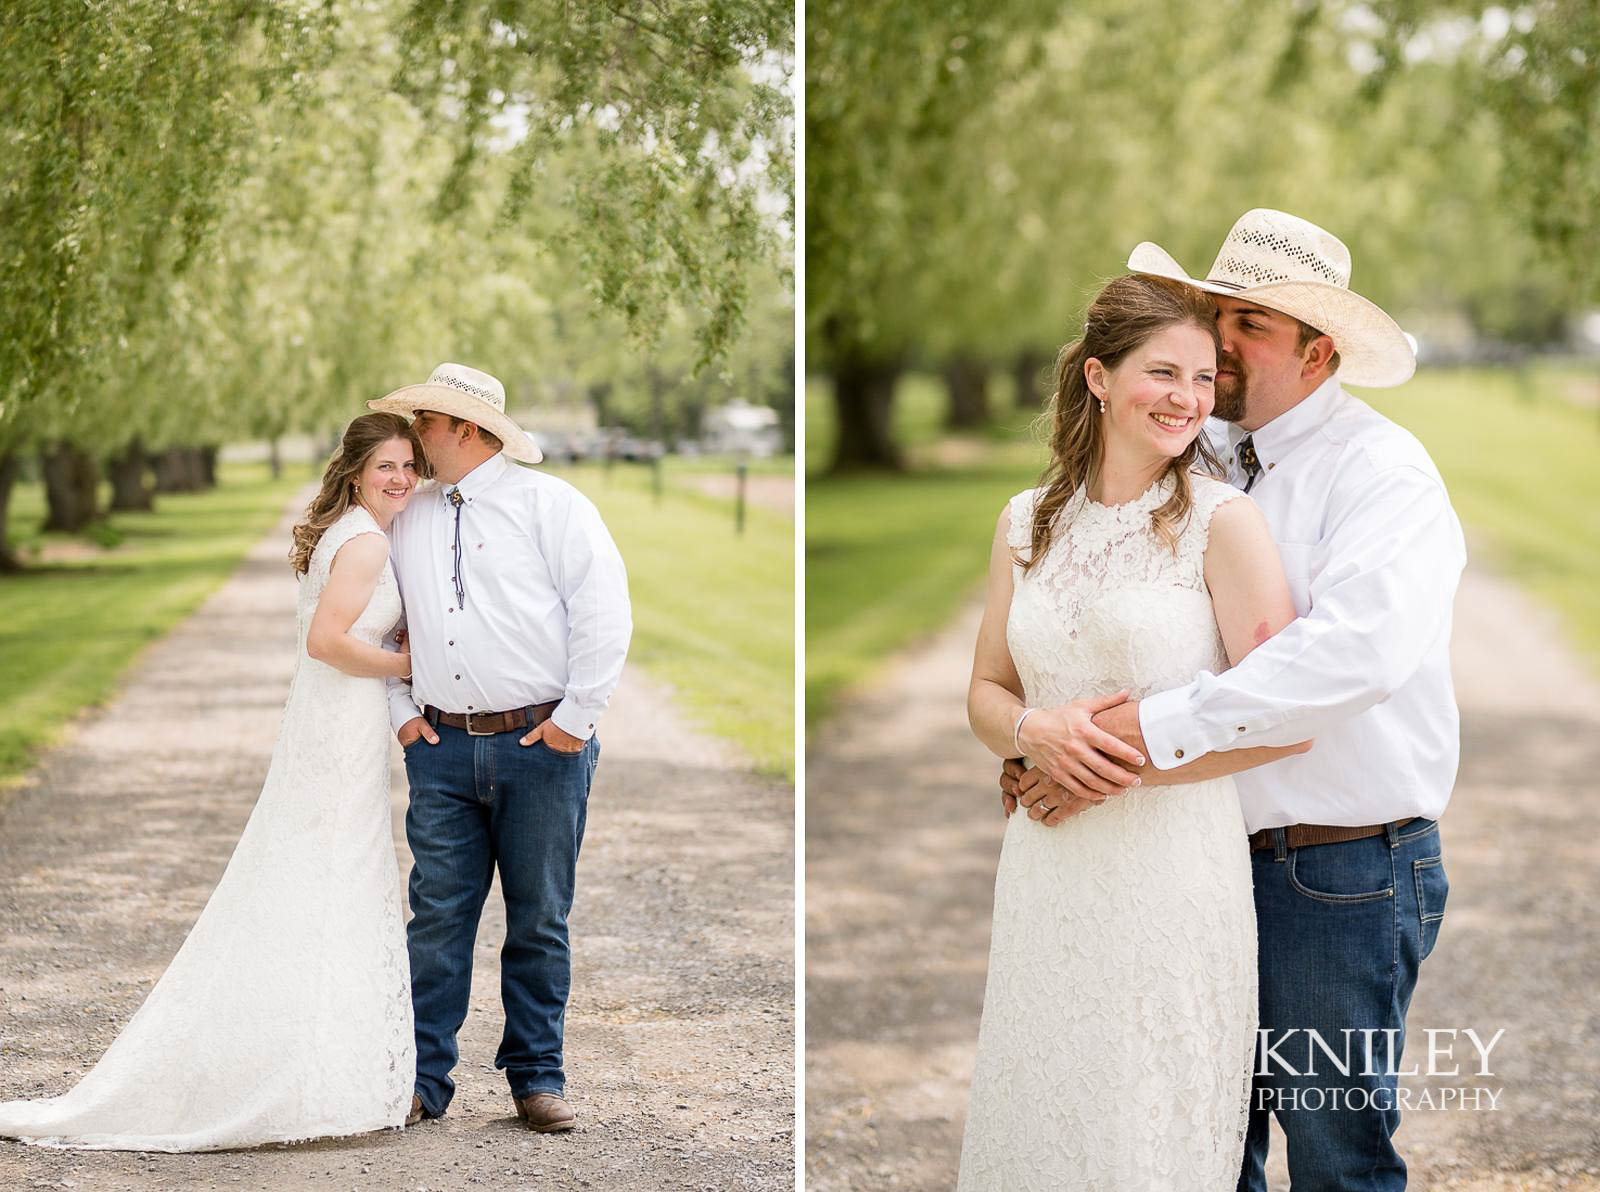 19-Western-New-York-farm-wedding-Kniley-Photography.jpg